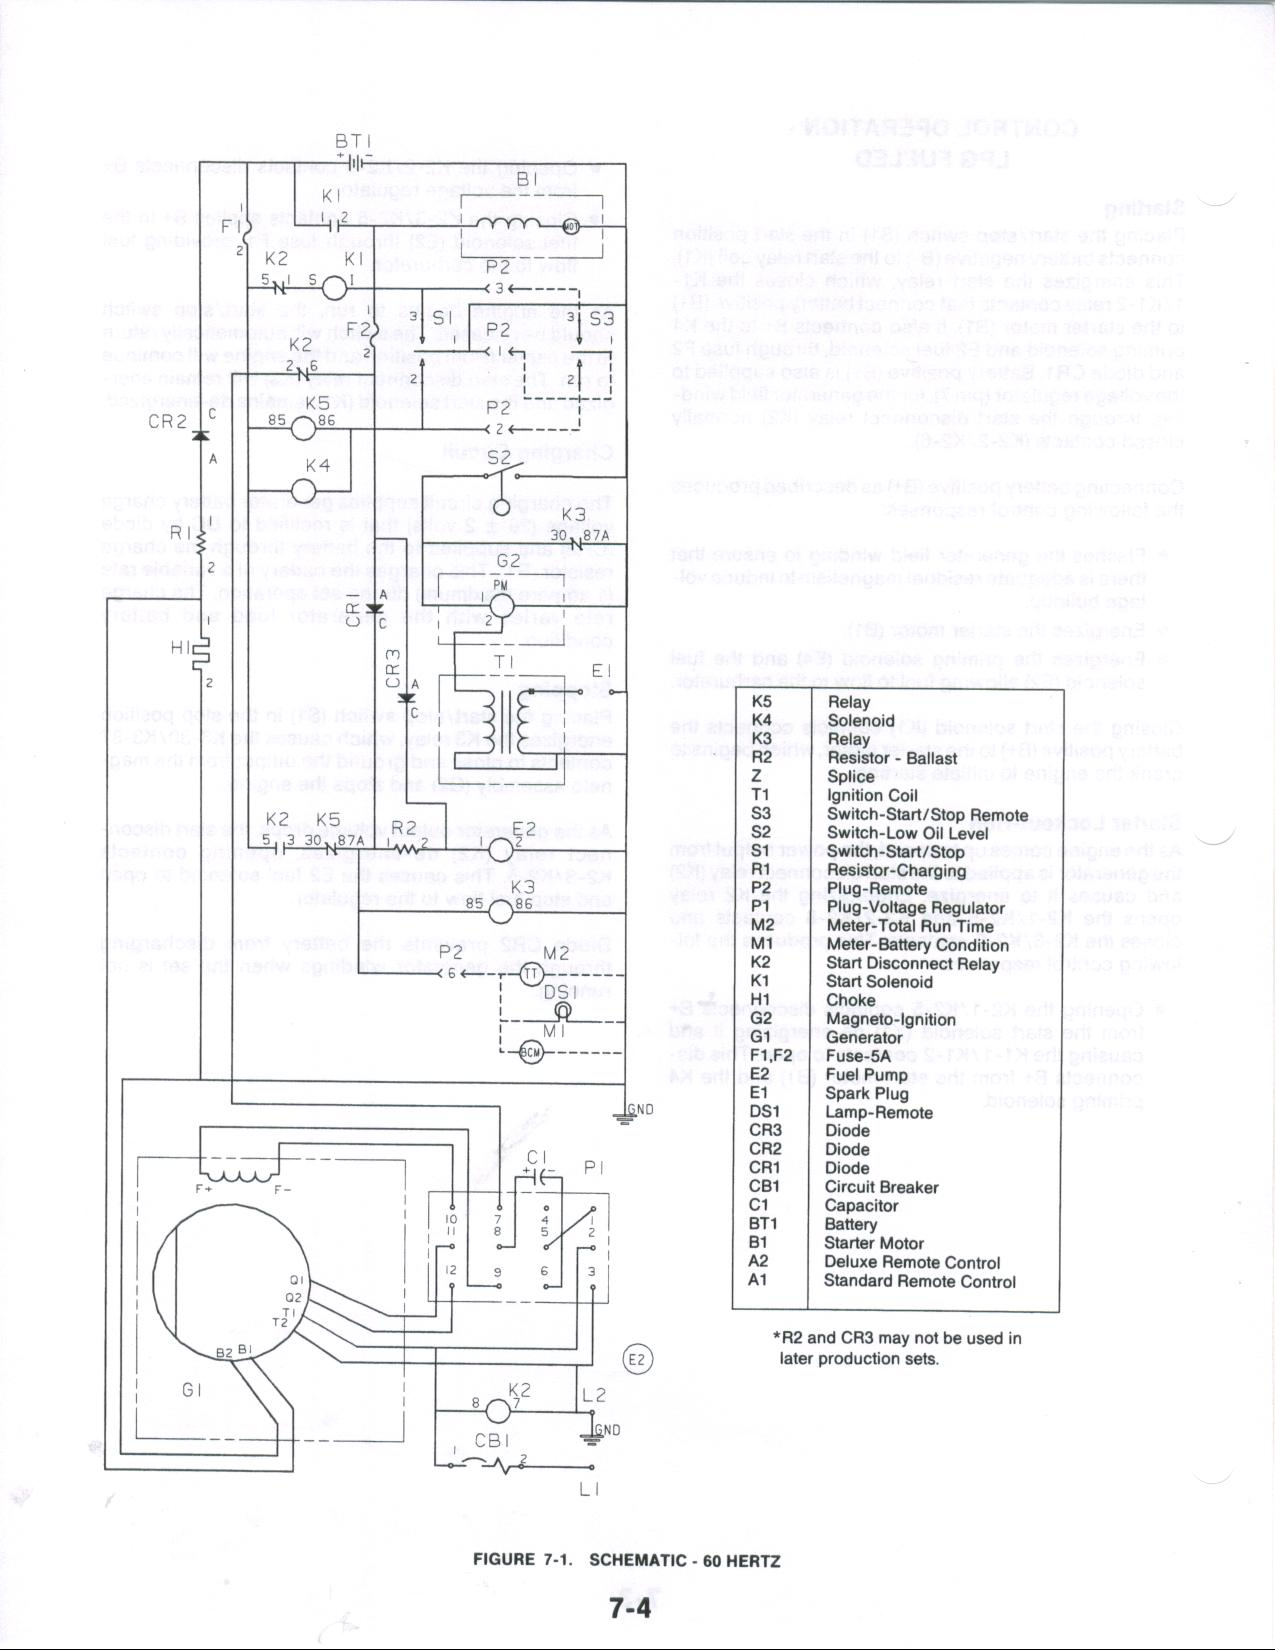 Onan Voltage Regulator Schematic http://www.randkproducts.com/product_info.php?products_id=269